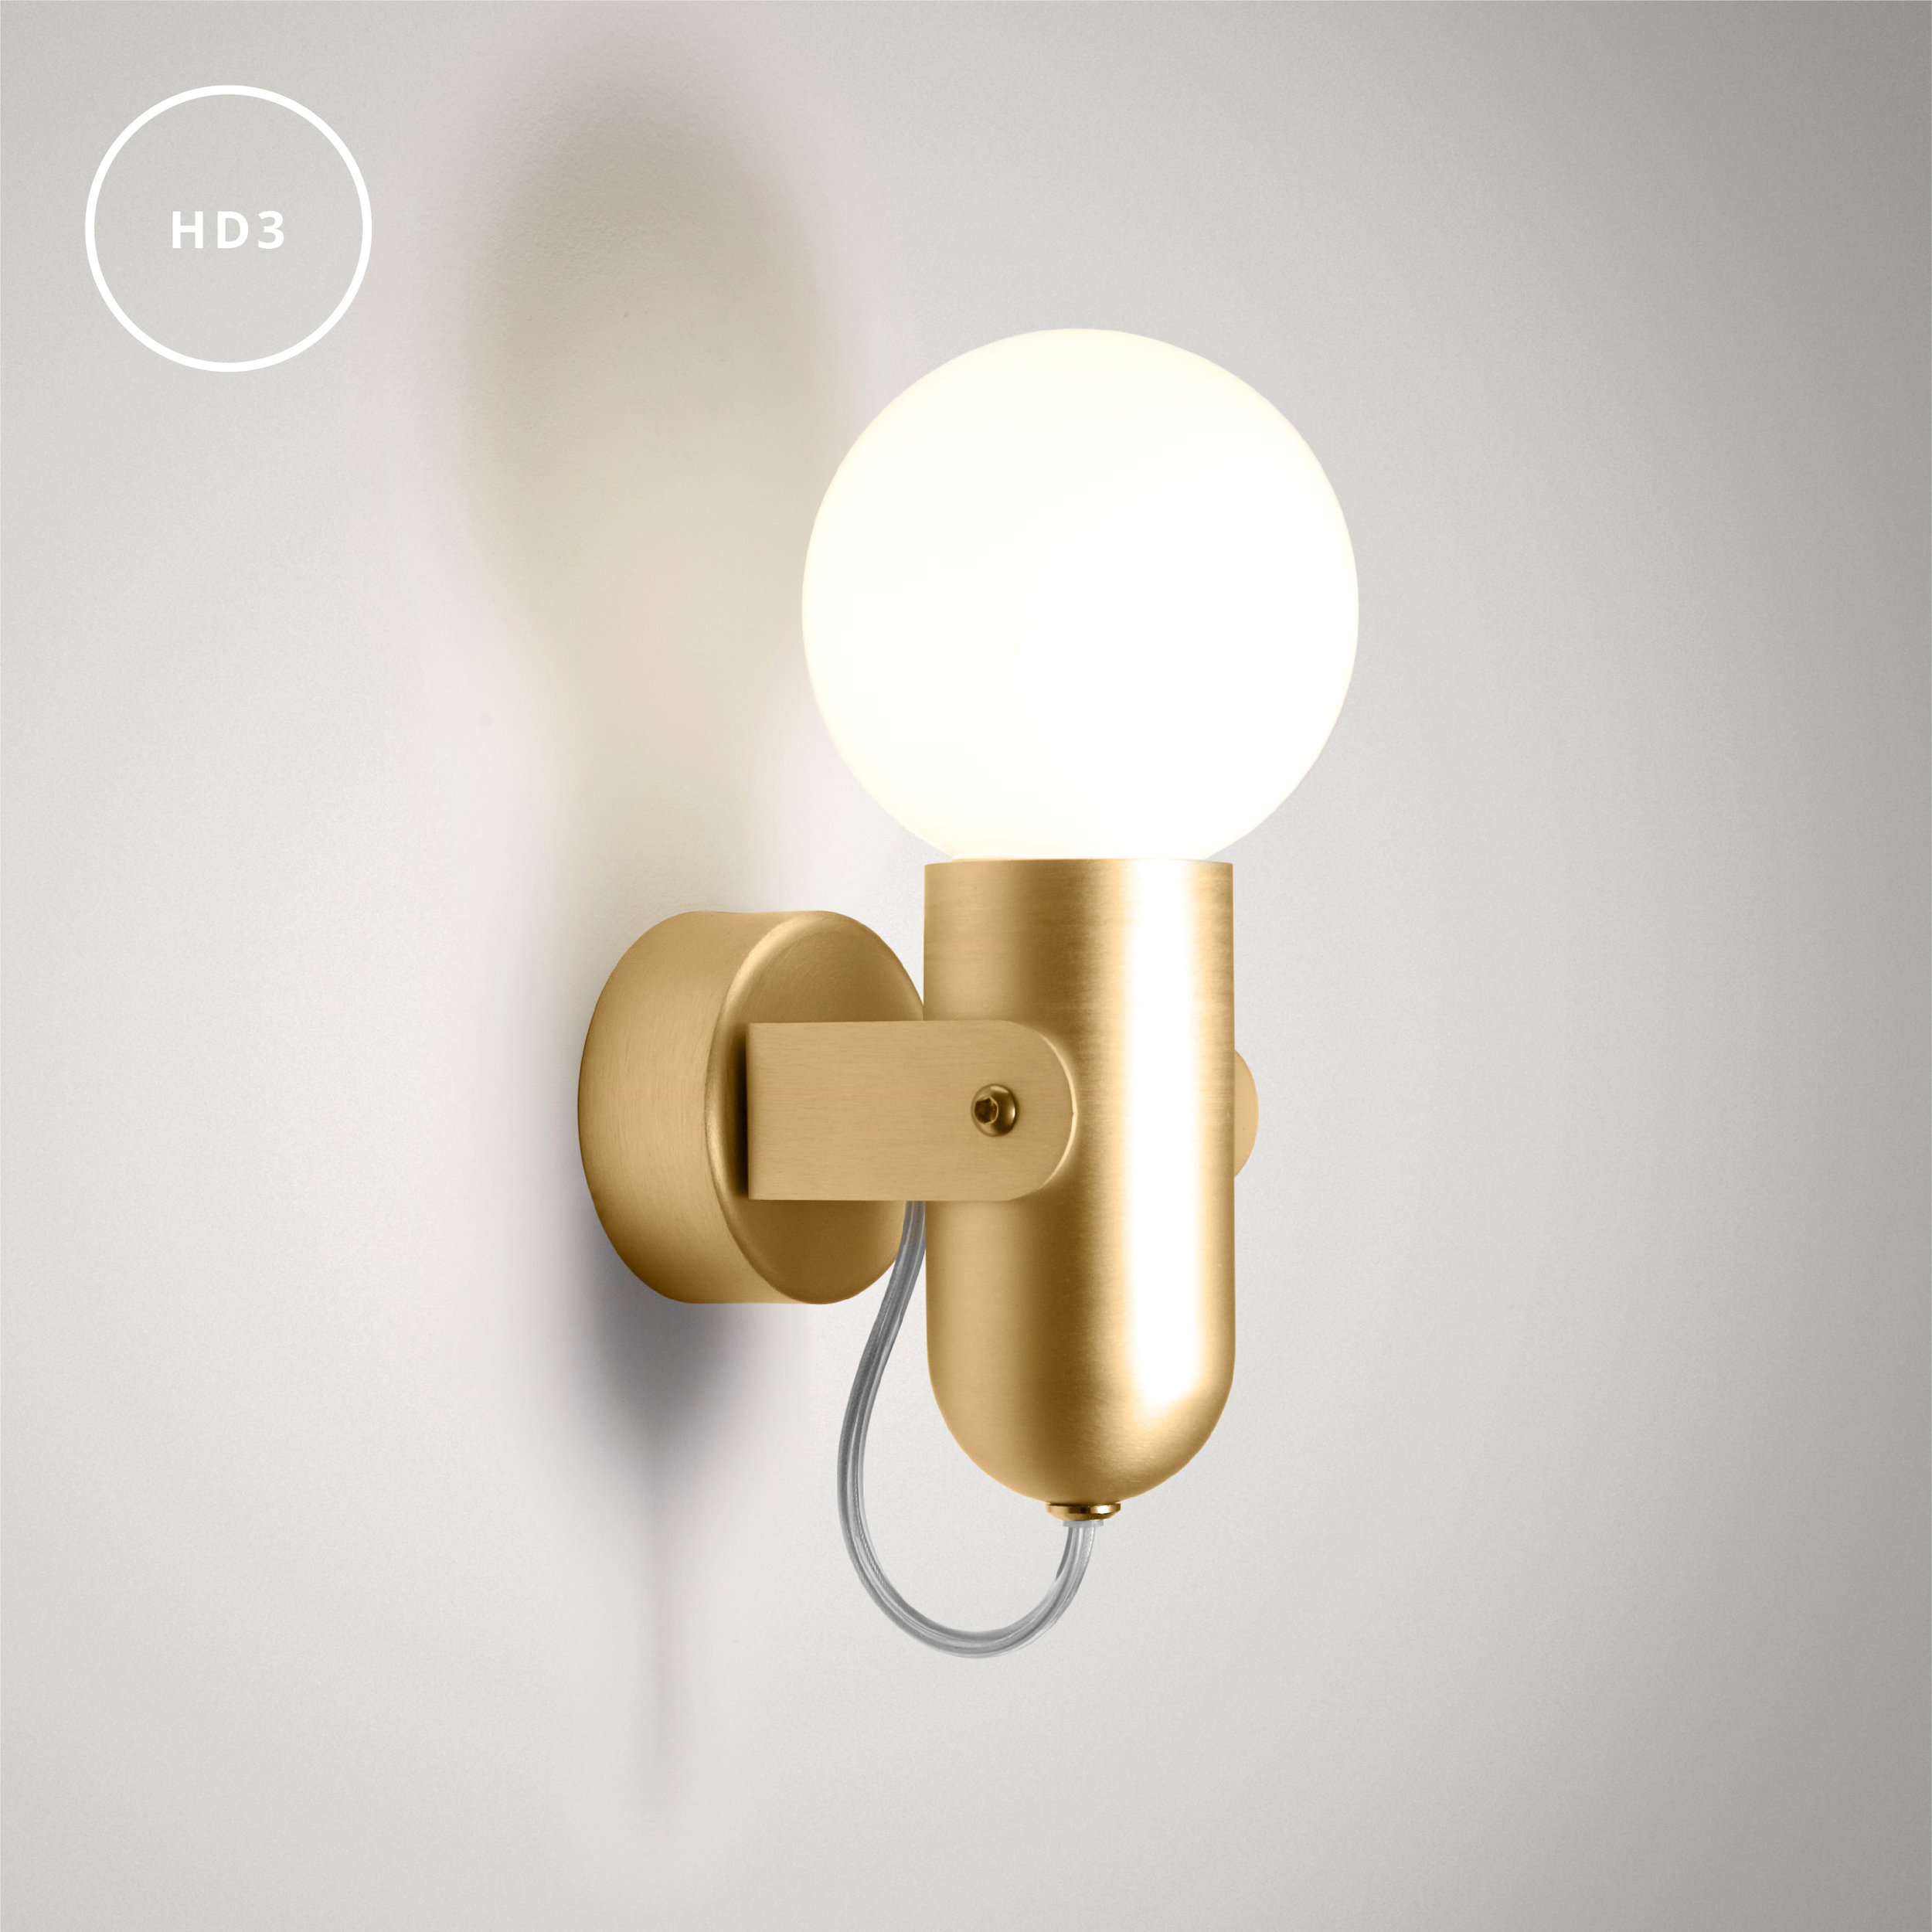 ISM Objects_HD3 brushed gold 2_Wall_WT.jpg